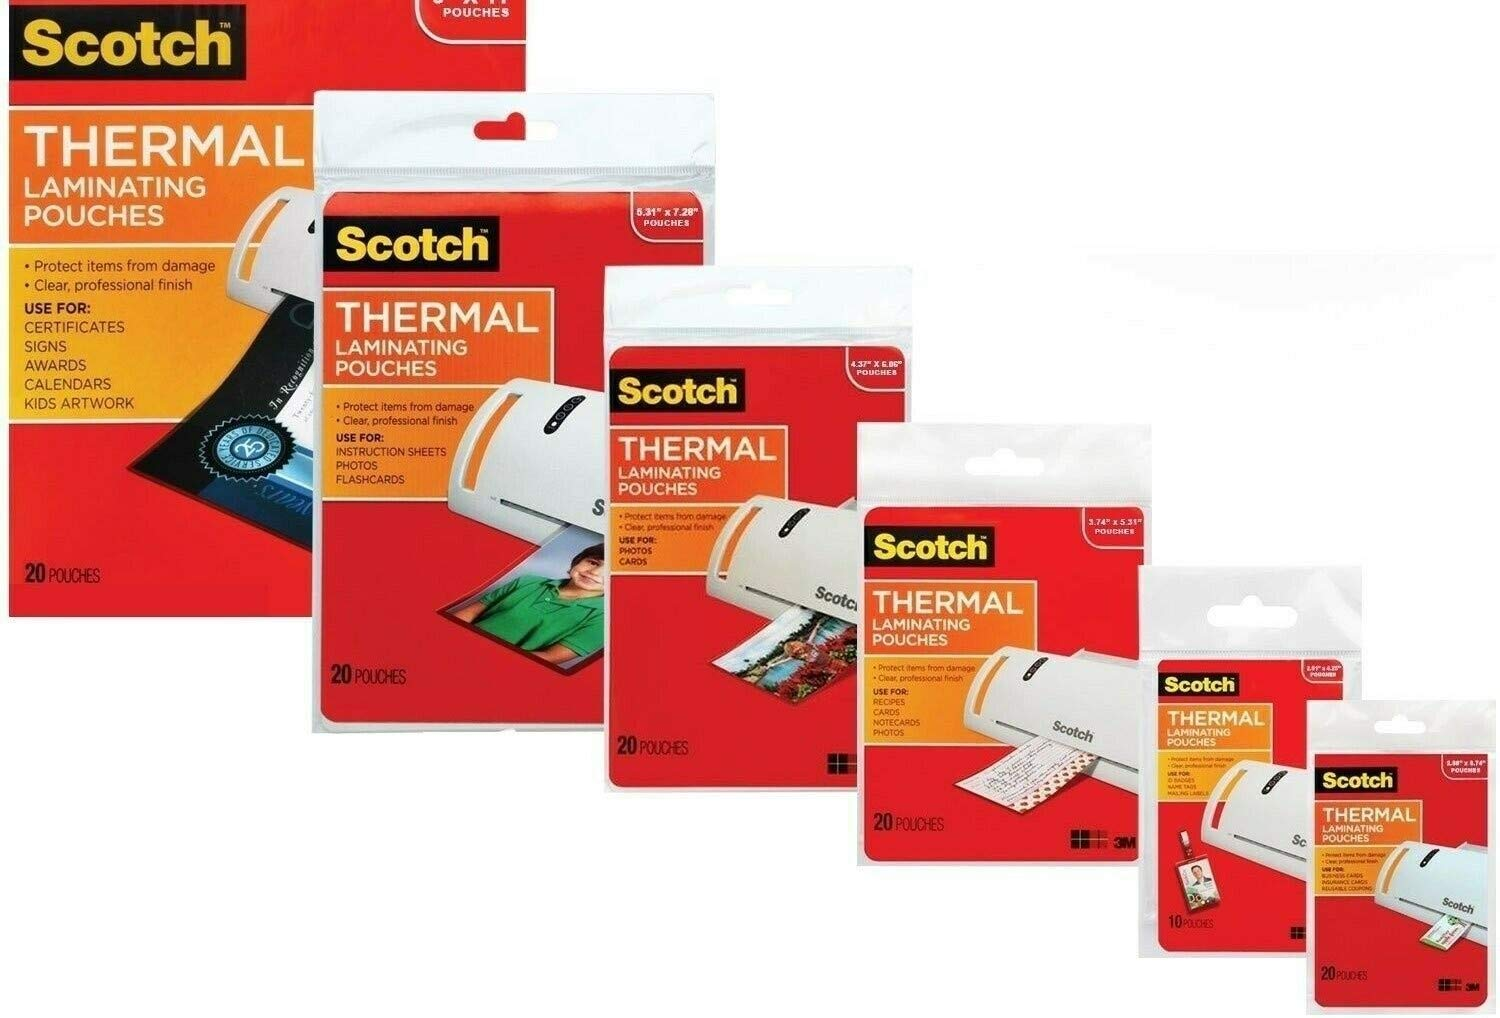 3M Laminating Pouch Kit with All Varieties of Laminating Pouches (1) by 3M